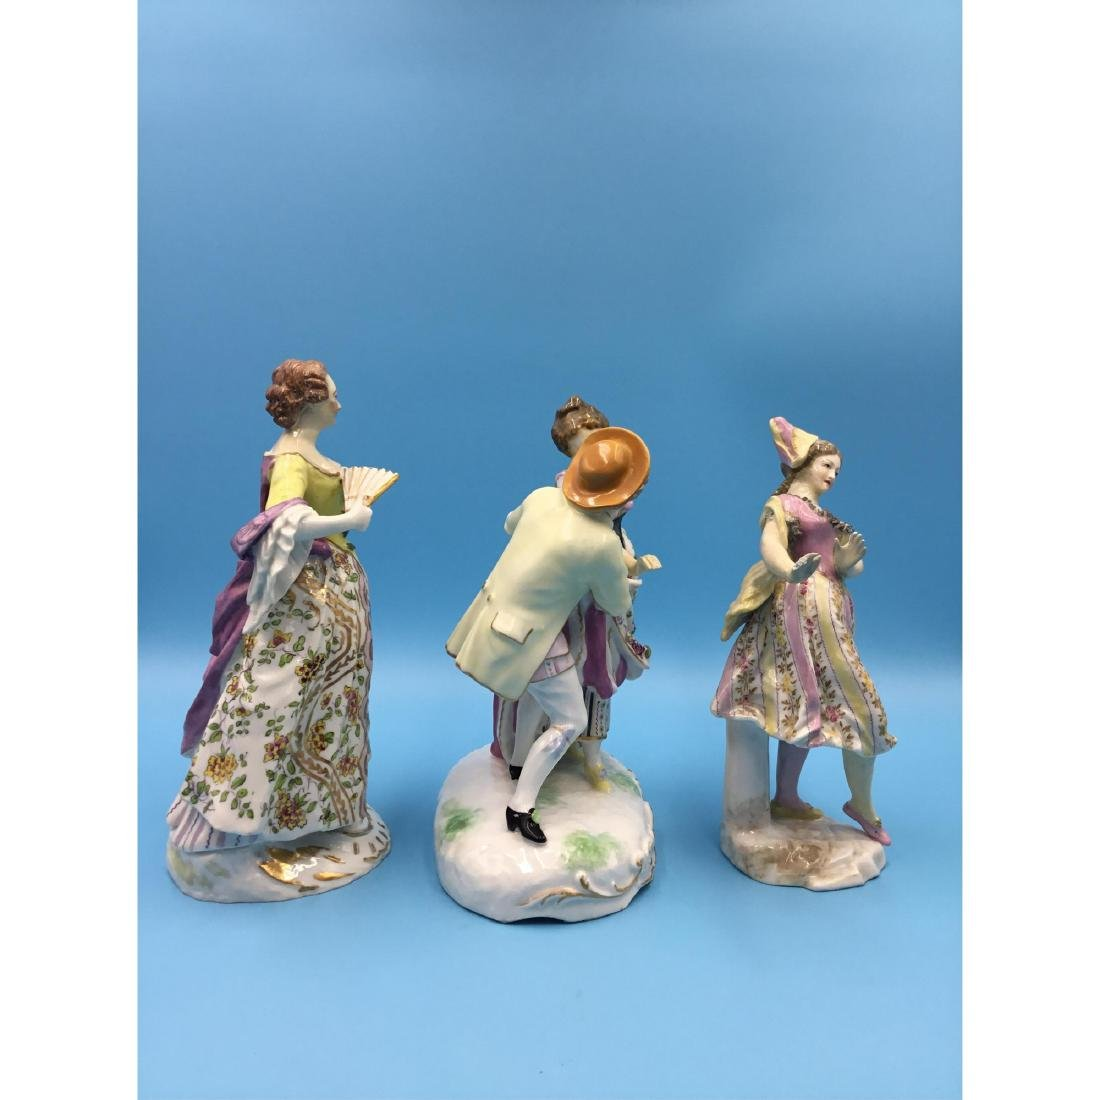 GROUP OF 3 SAMSON FRENCH PORCELAIN FIGURINES - 4